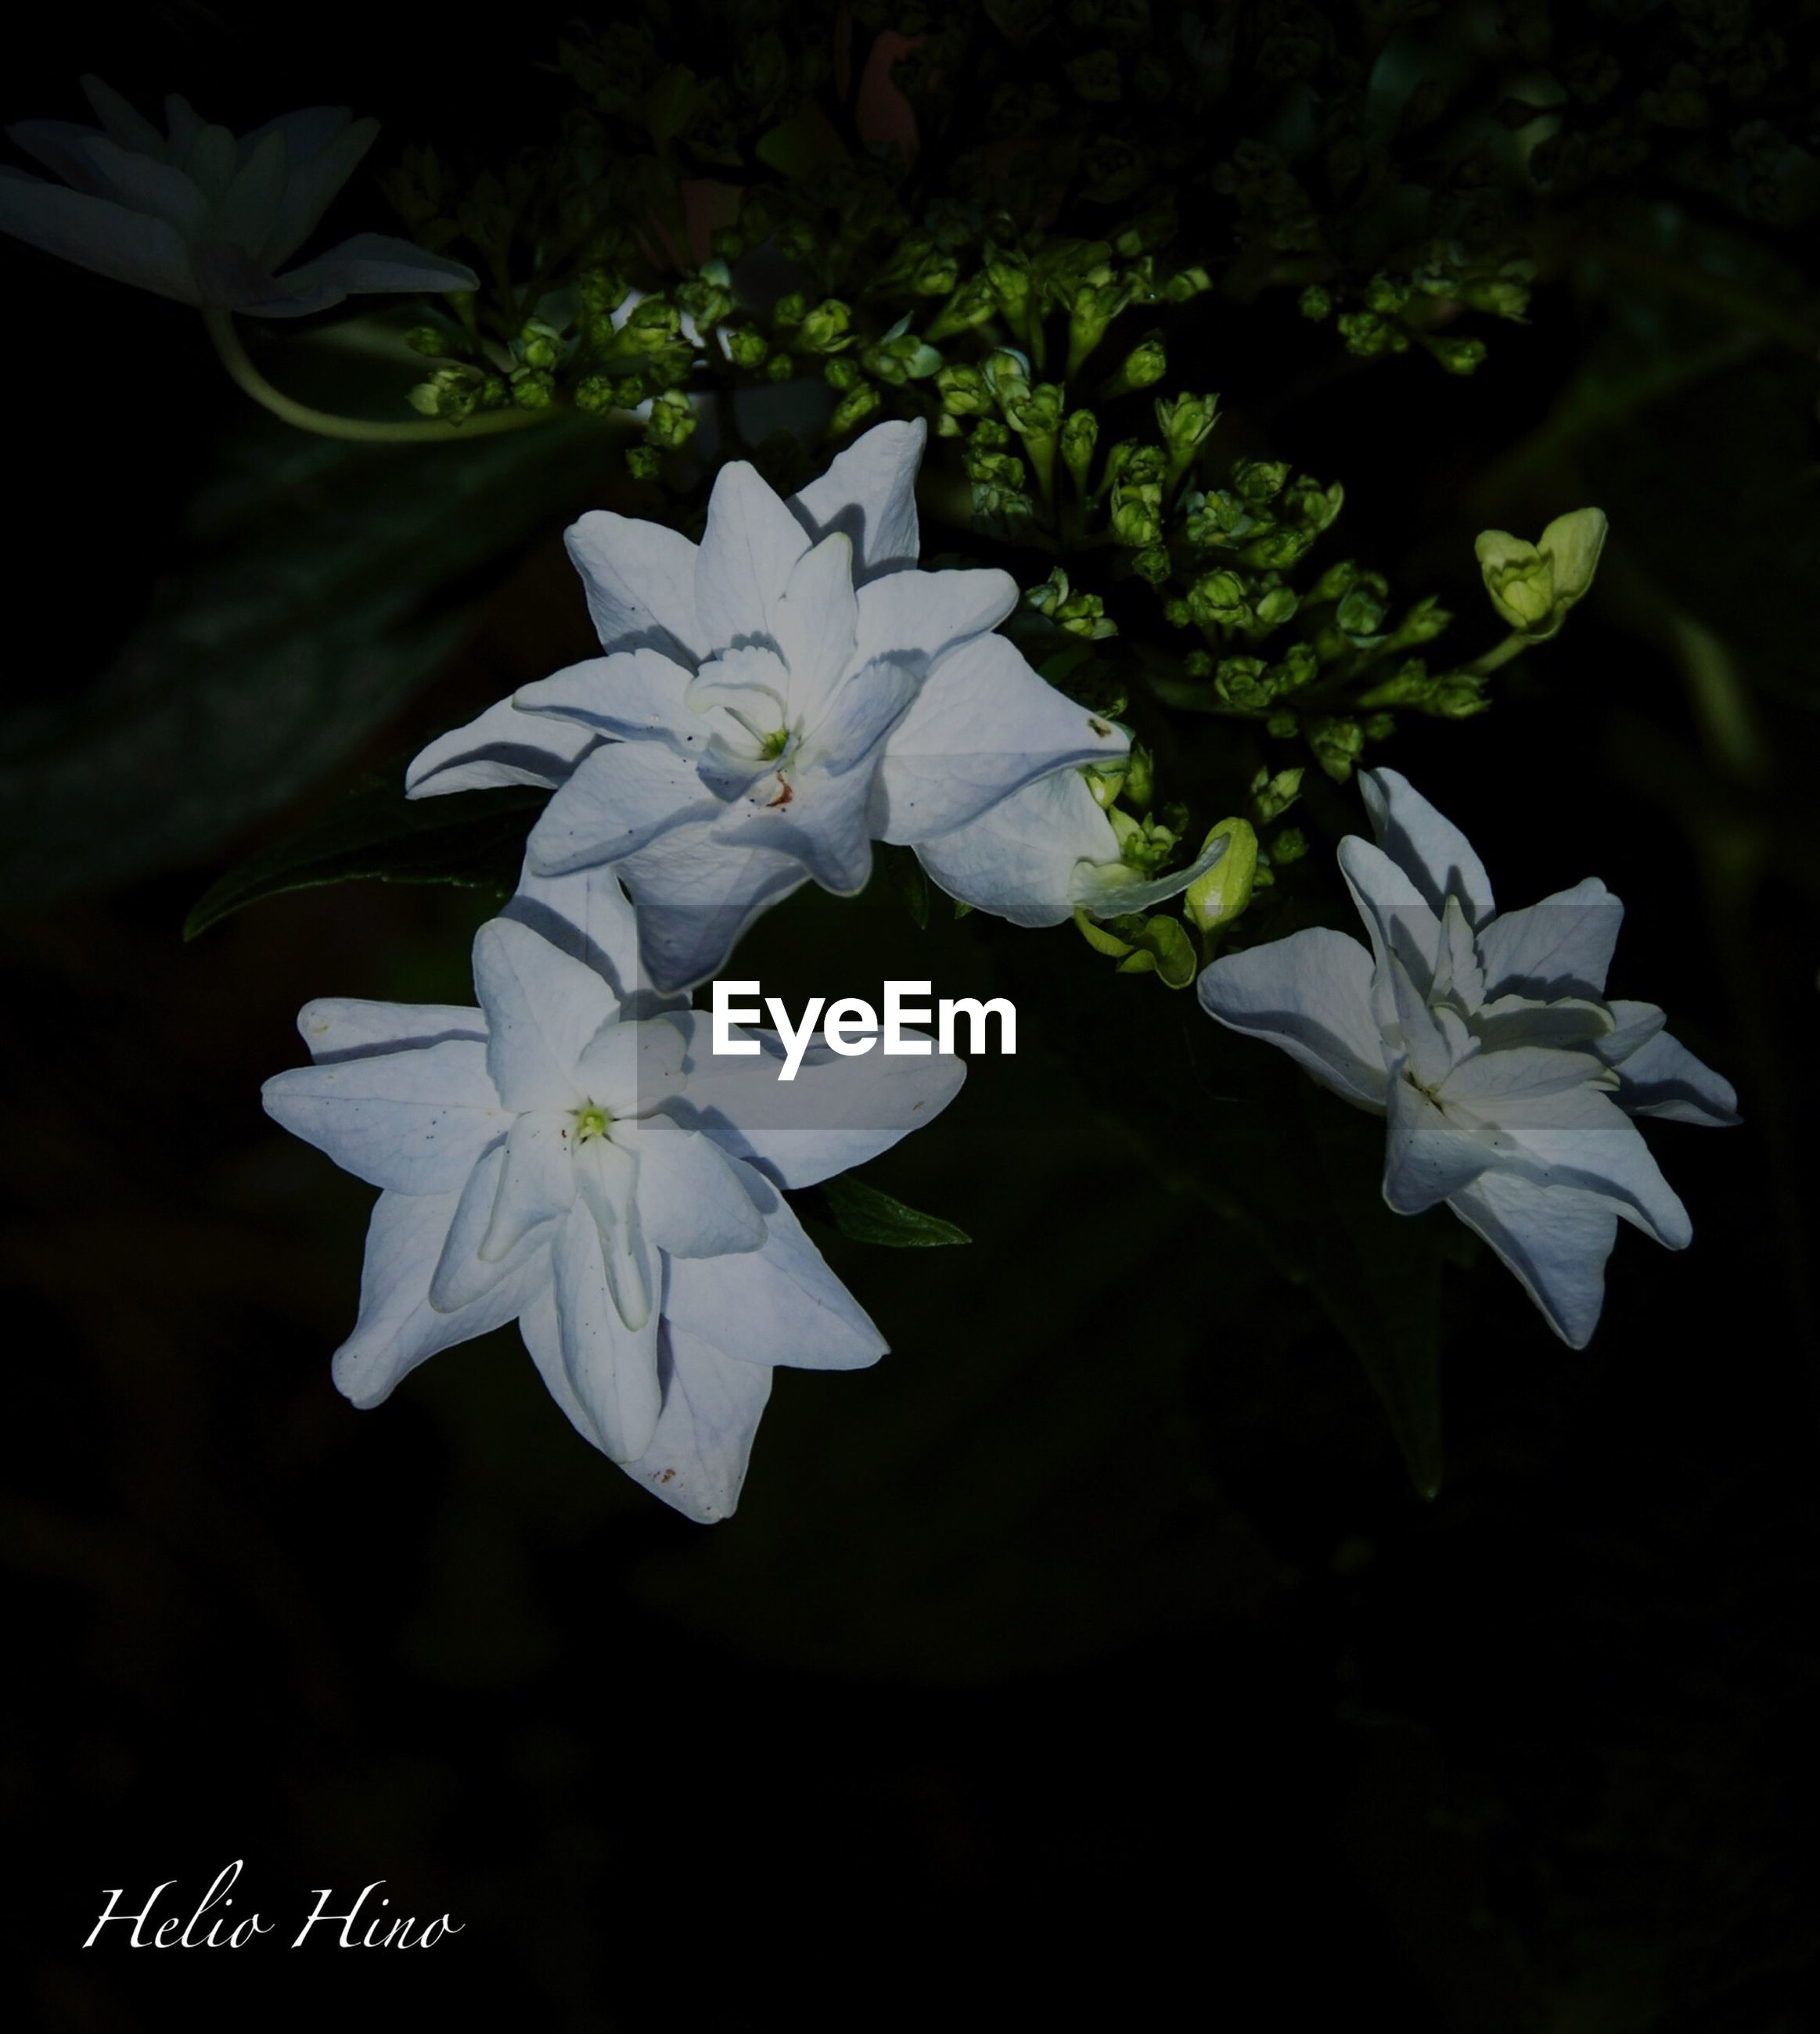 flower, white color, petal, freshness, fragility, growth, flower head, beauty in nature, close-up, nature, blooming, white, plant, black background, leaf, in bloom, focus on foreground, night, blossom, pollen